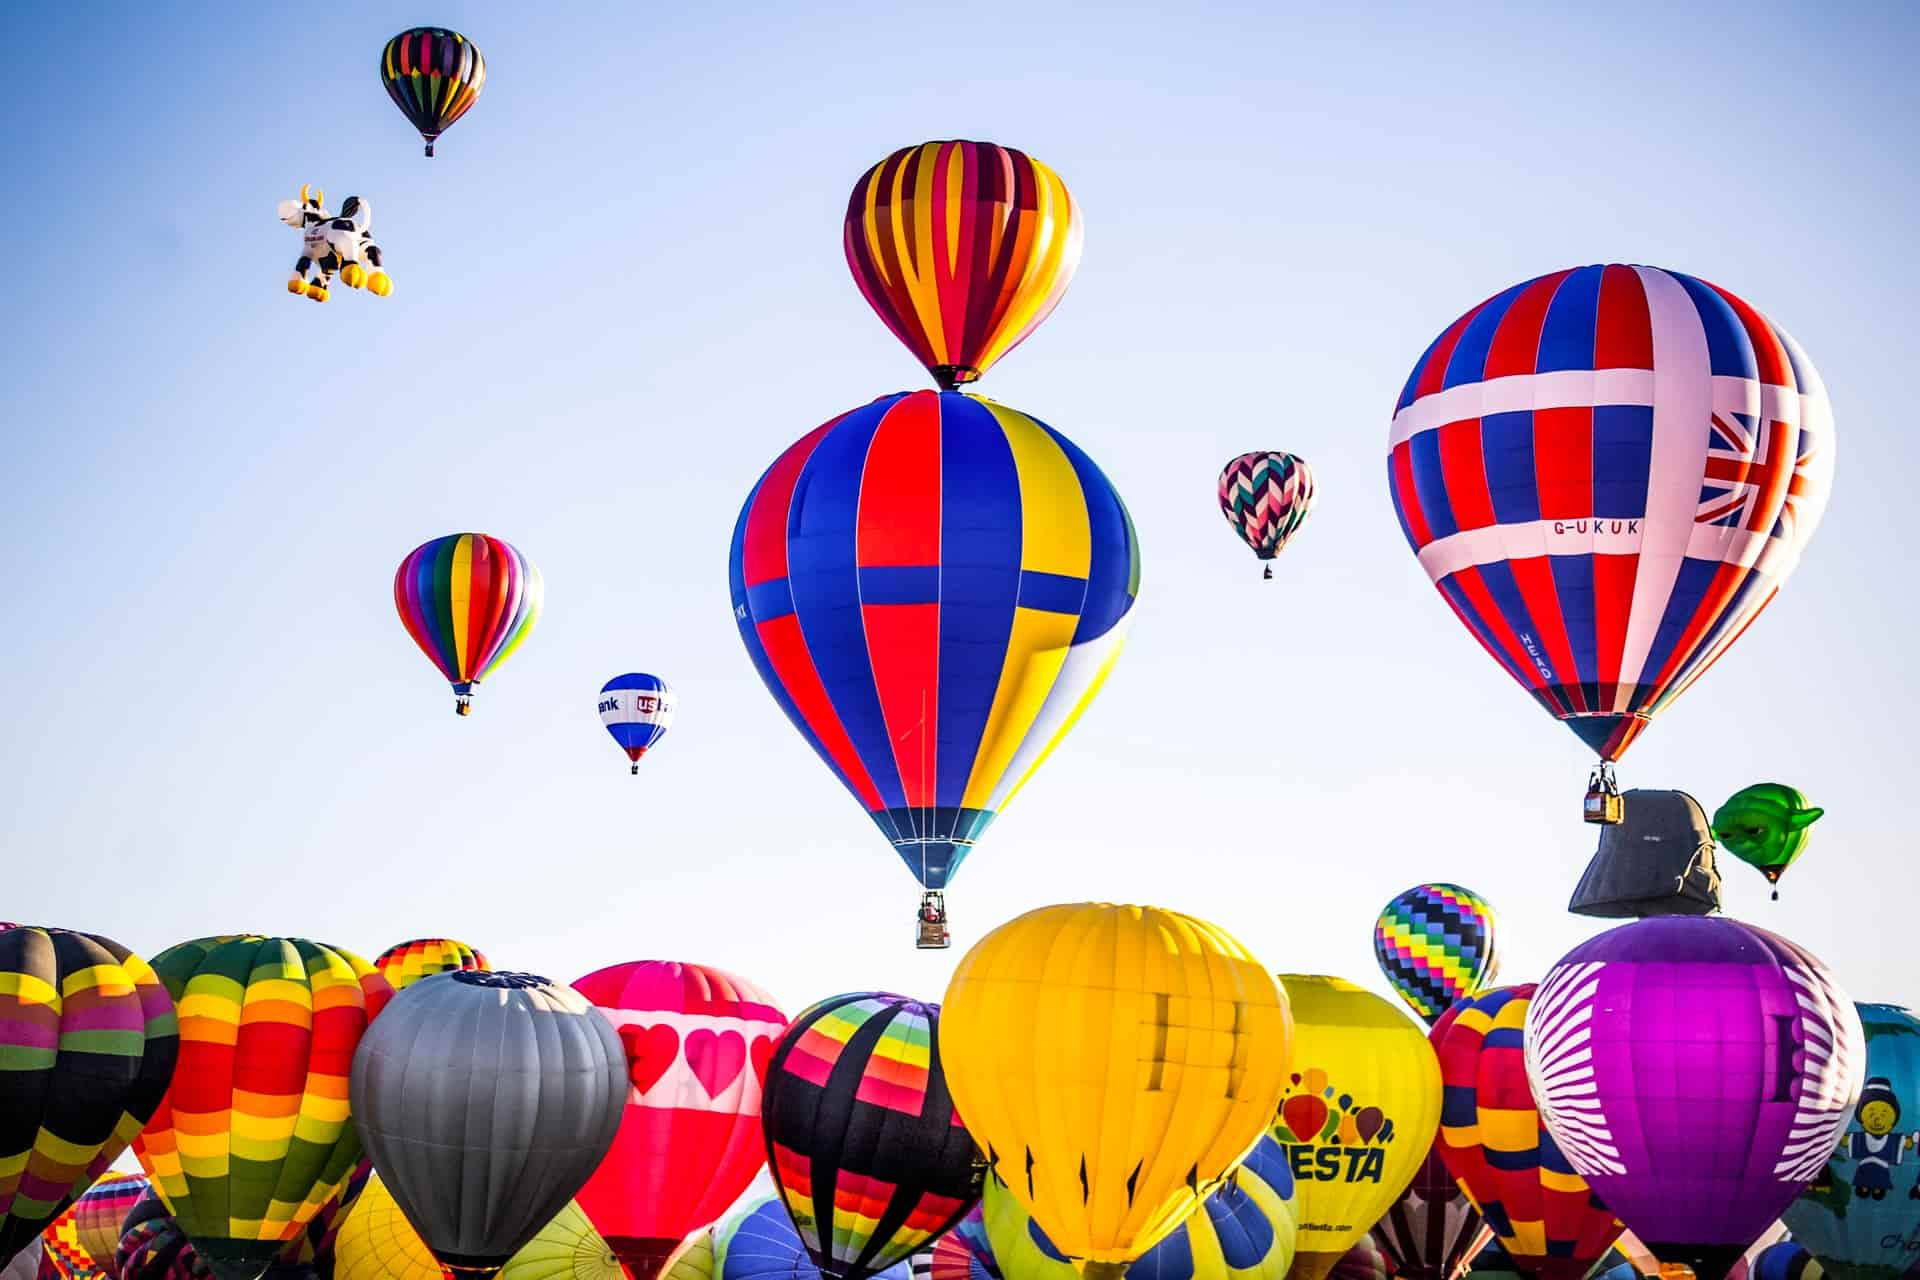 Hot air balloons taking off in the early morning